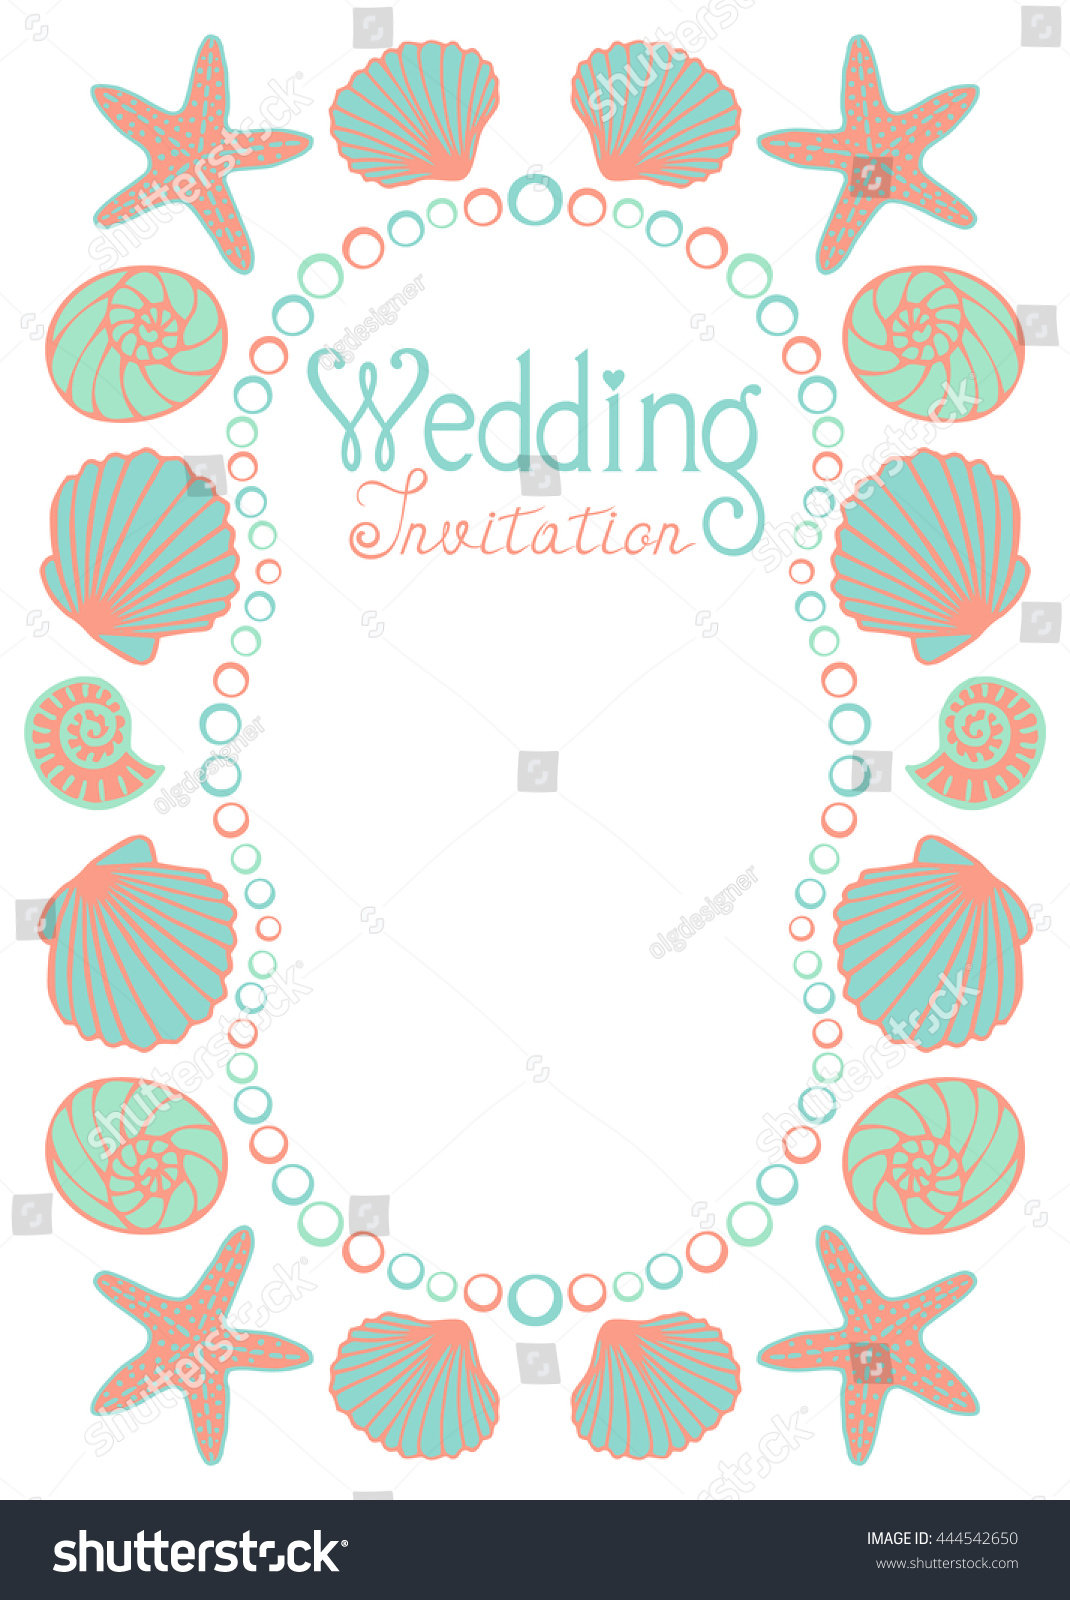 Wedding Invitation Card Sea Beach Theme Stock Vector (Royalty Free ...